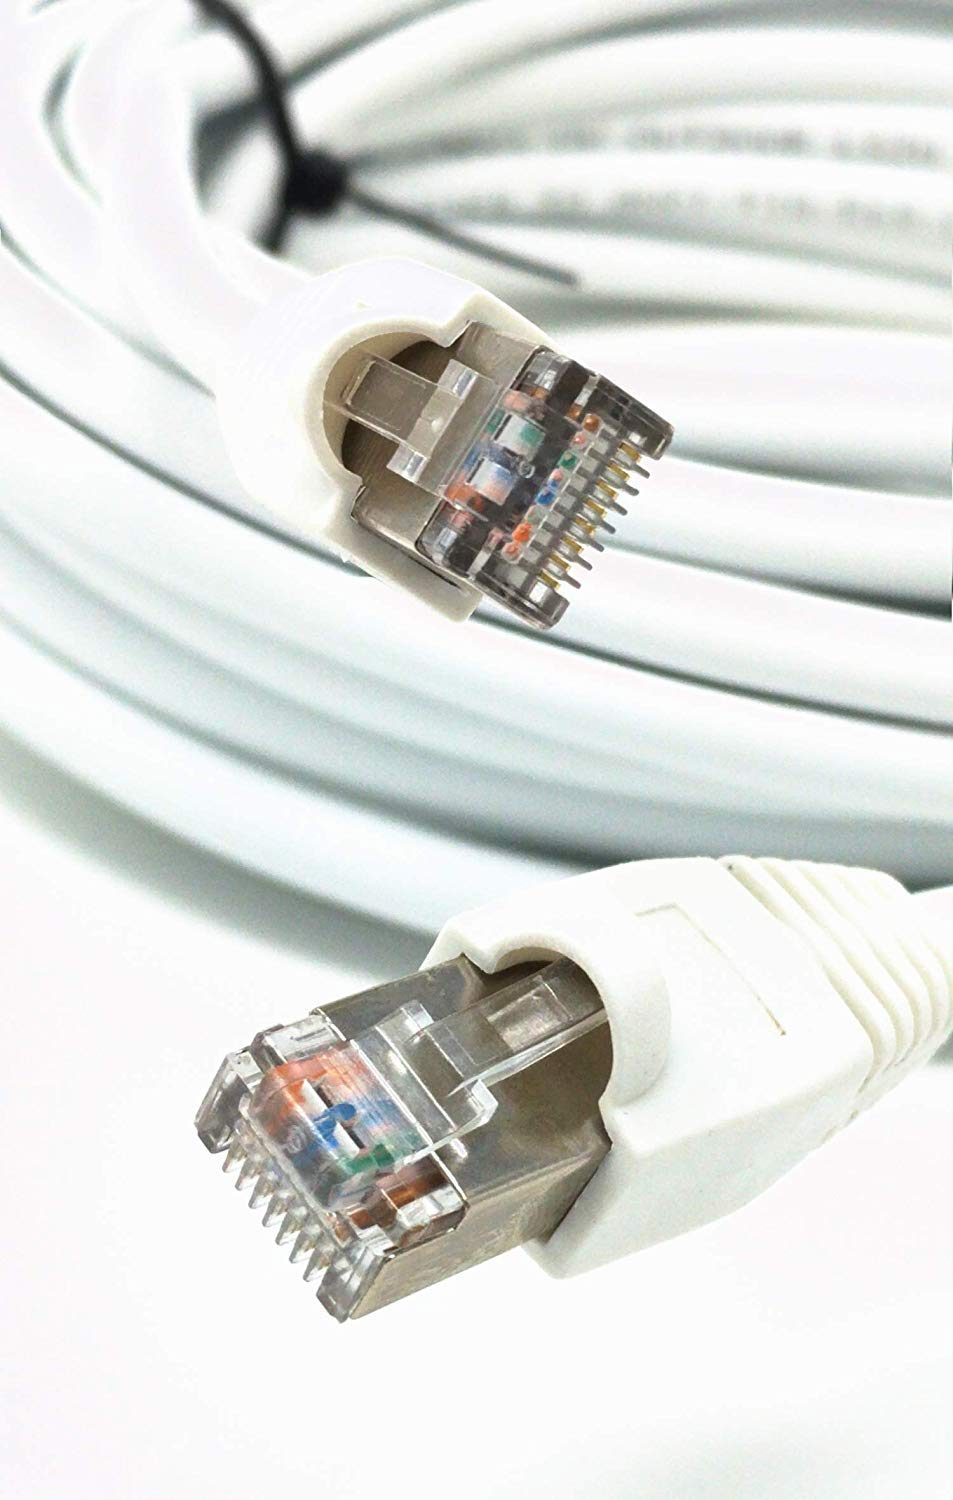 Ultra Spec Cables Special price 100ft White Ethernet Cat5e Mail order Waterproof Outdoor